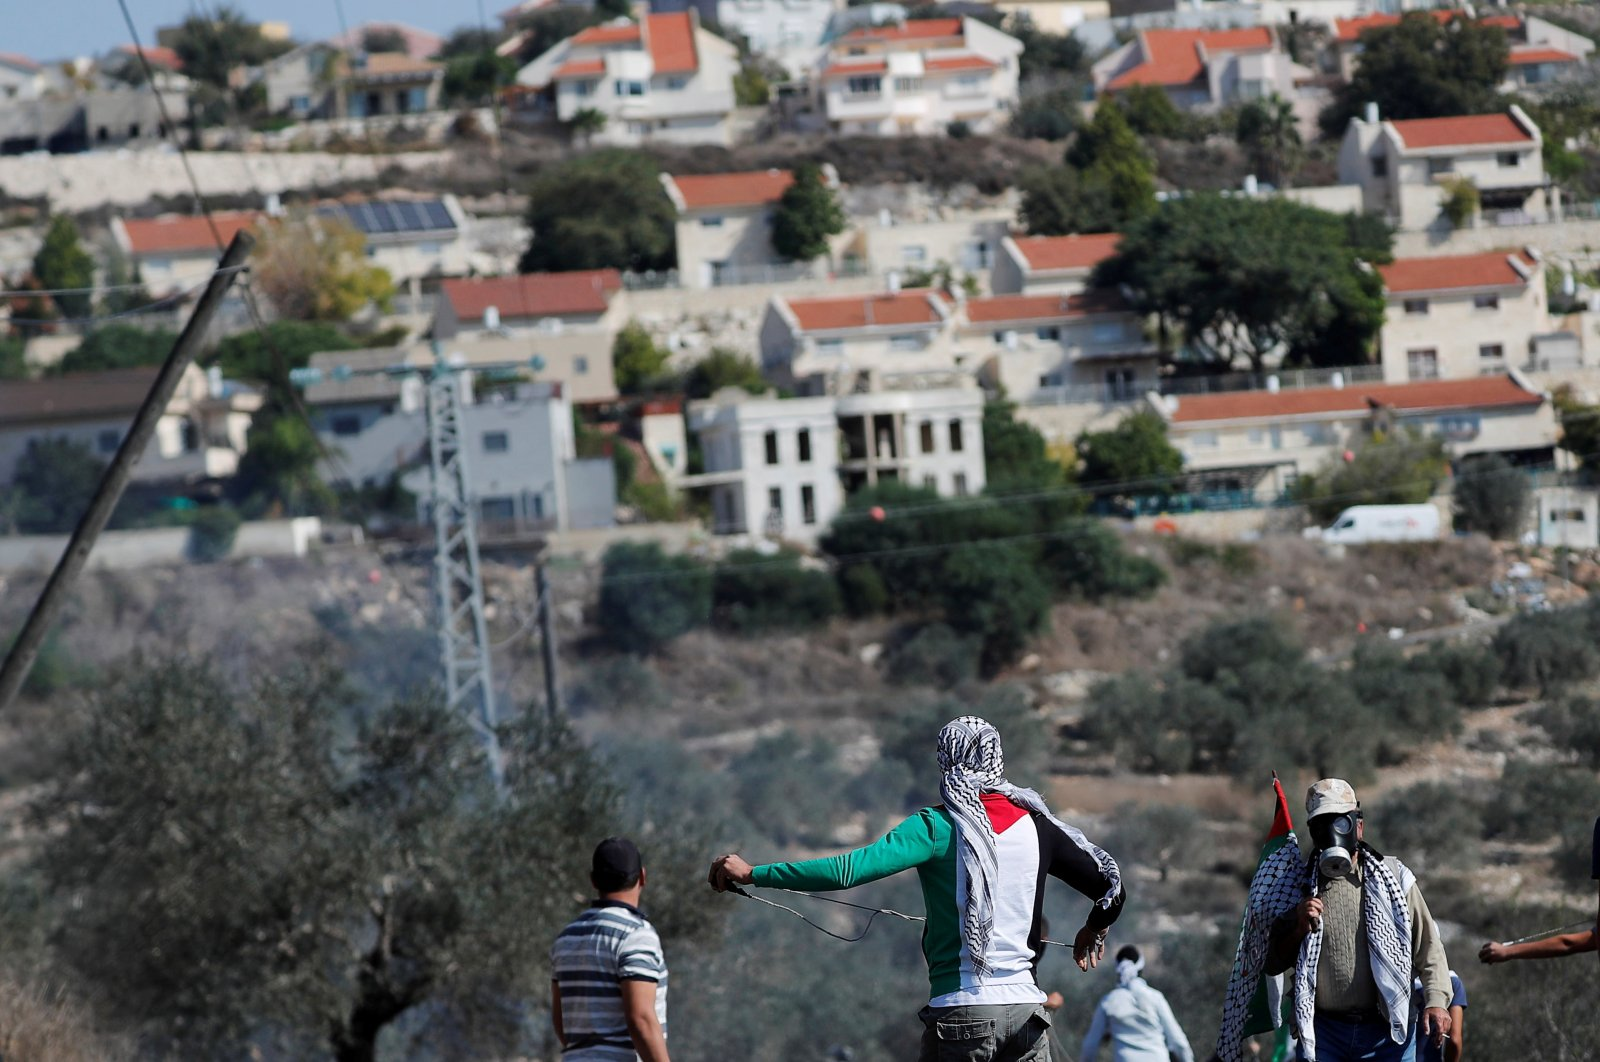 Palestinian demonstrators stand in front of a Jewish settlement during a protest, in Kafr Qaddum in the Israeli-occupied West Bank, Palestine, Nov. 13, 2020. (Reuters Photo)